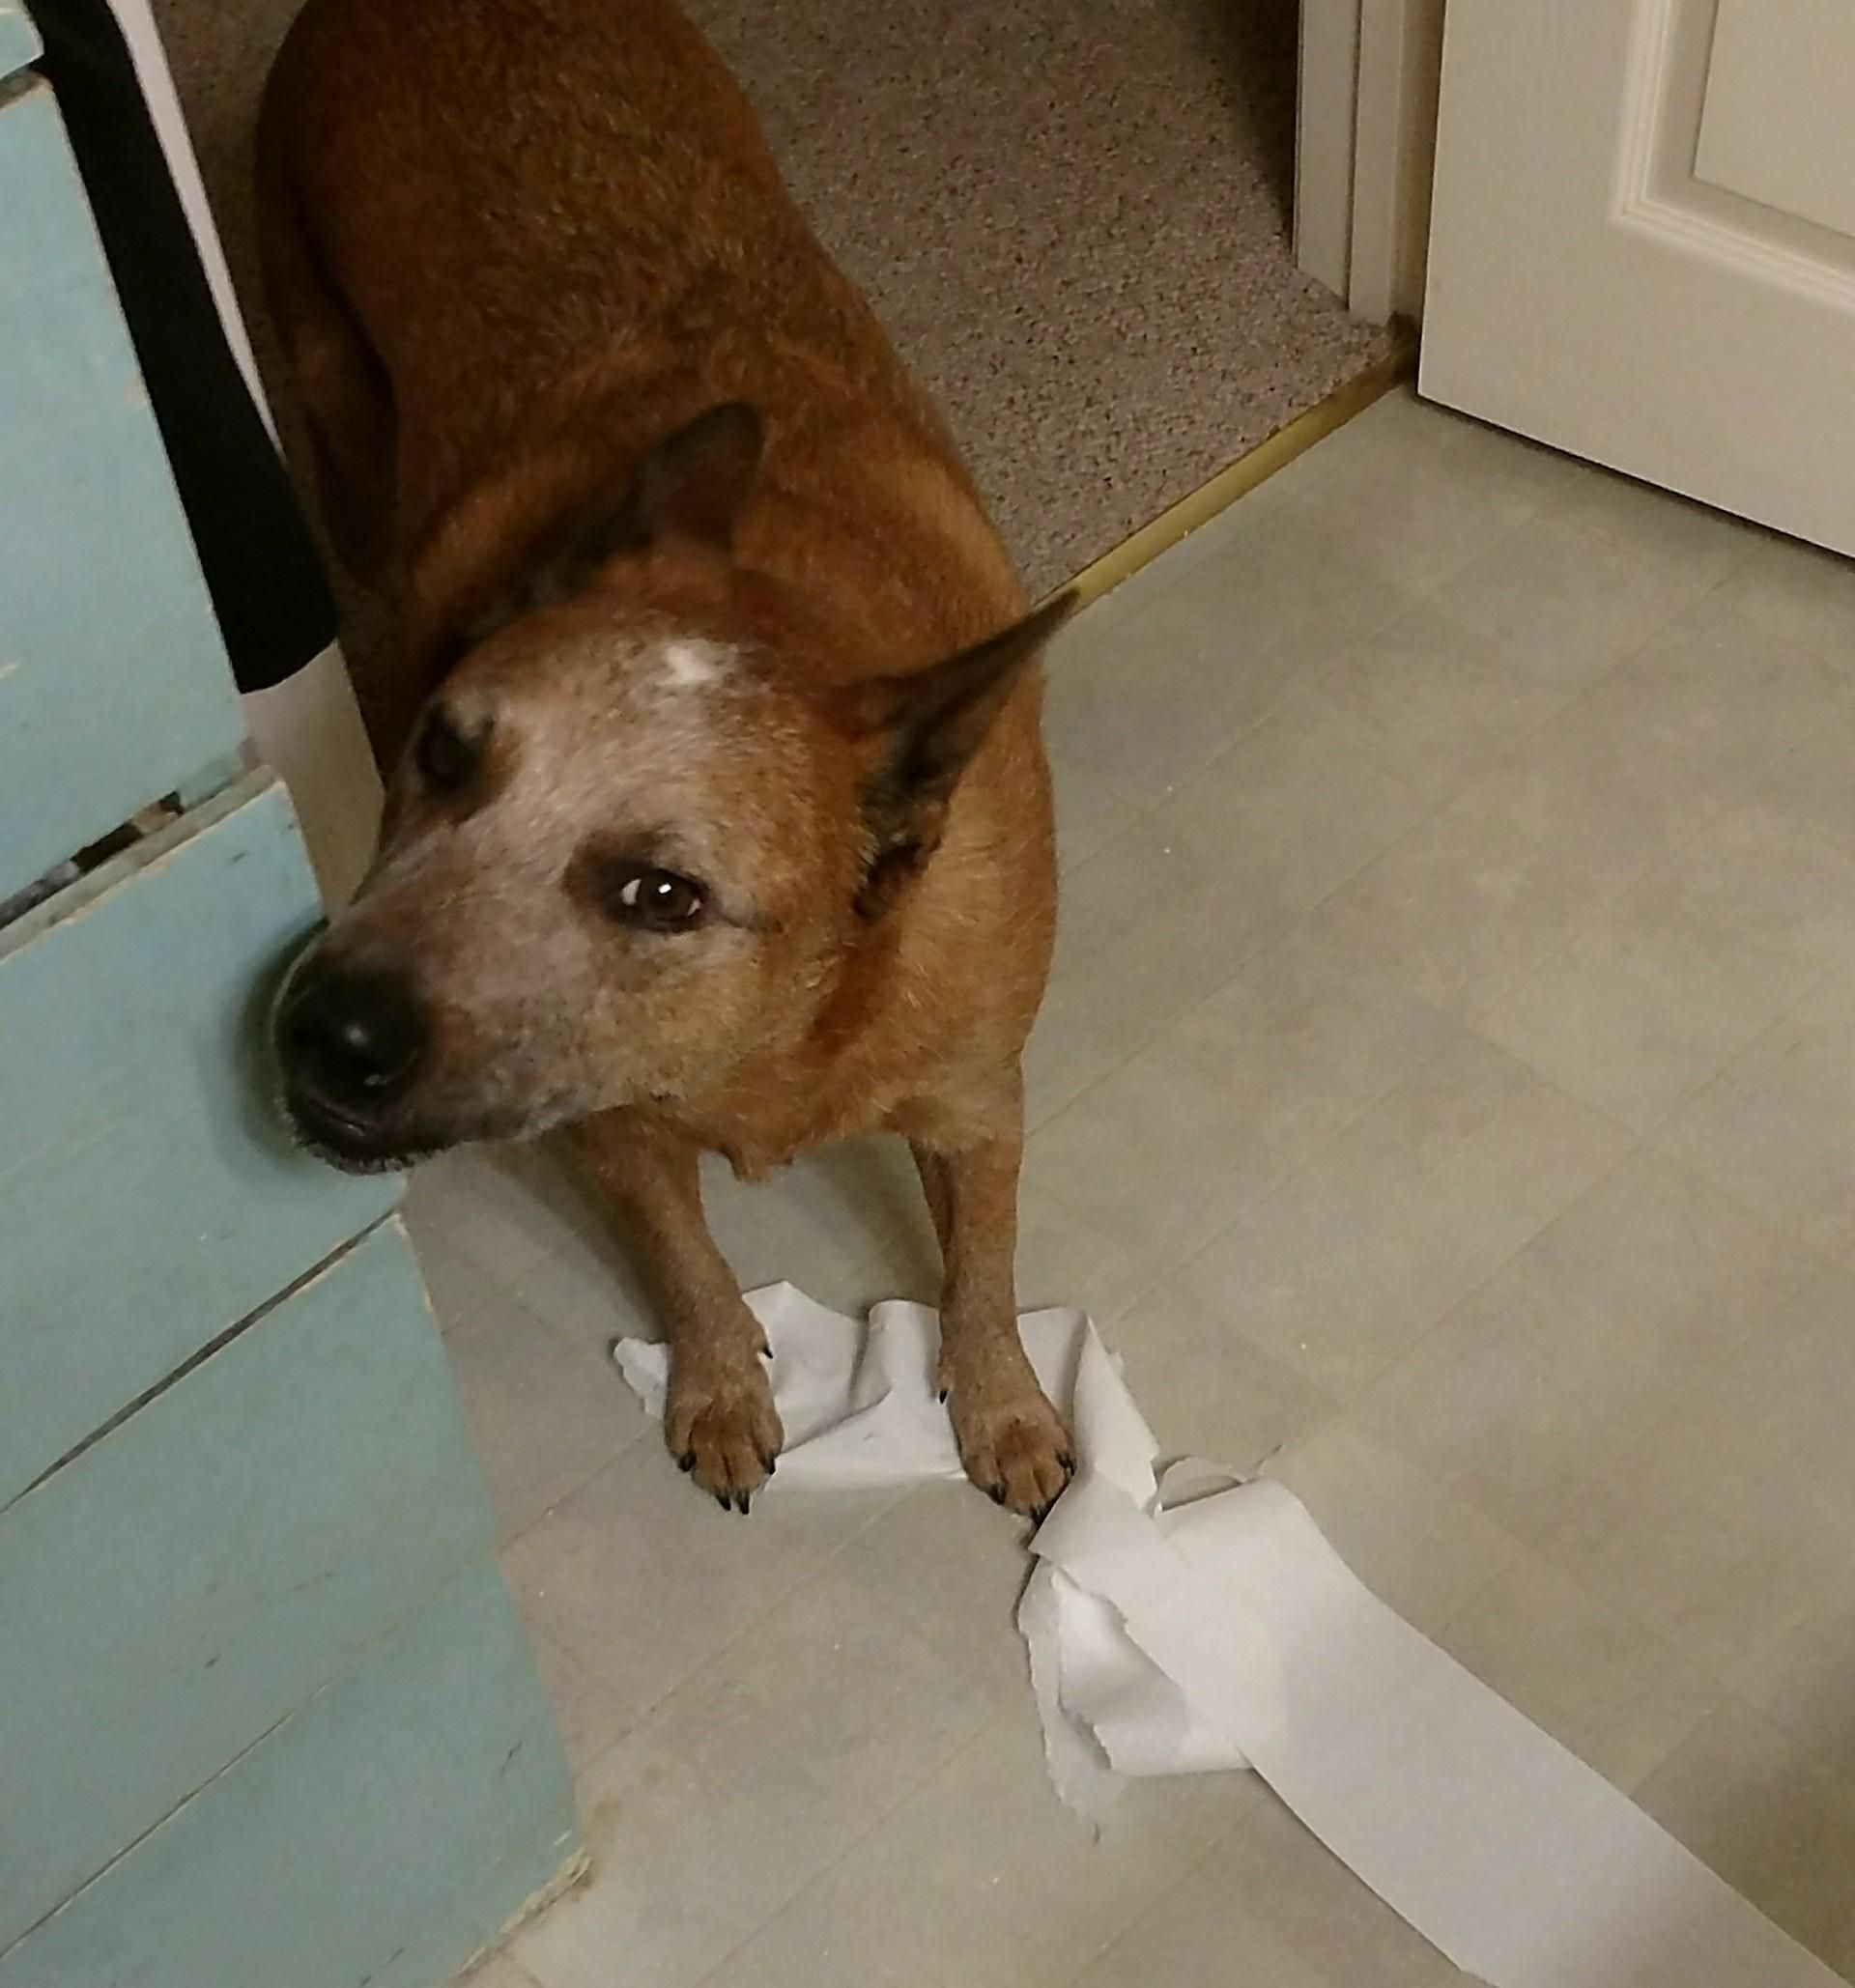 I have no idea who unrolled all the toilet paper http